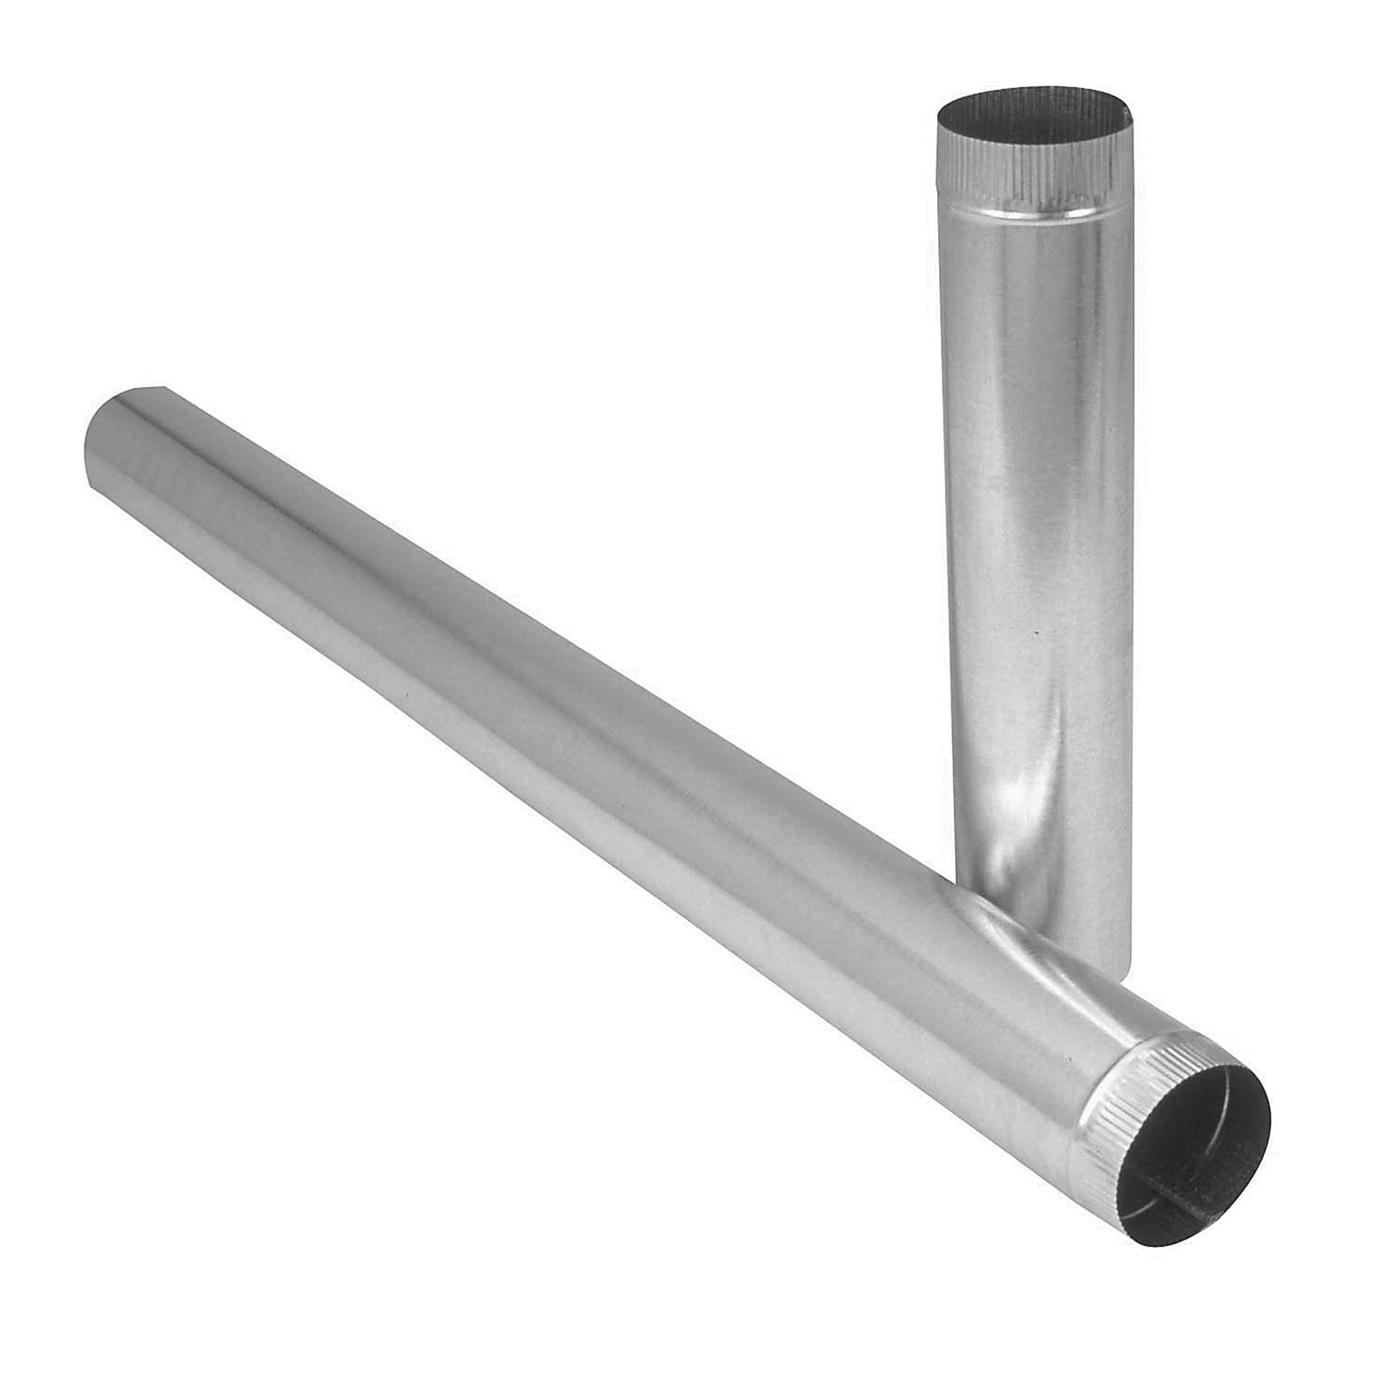 Picture of Imperial GV1604 Duct Pipe, 3 in Dia, 24 in L, 26 Gauge, Galvanized Steel, Galvanized